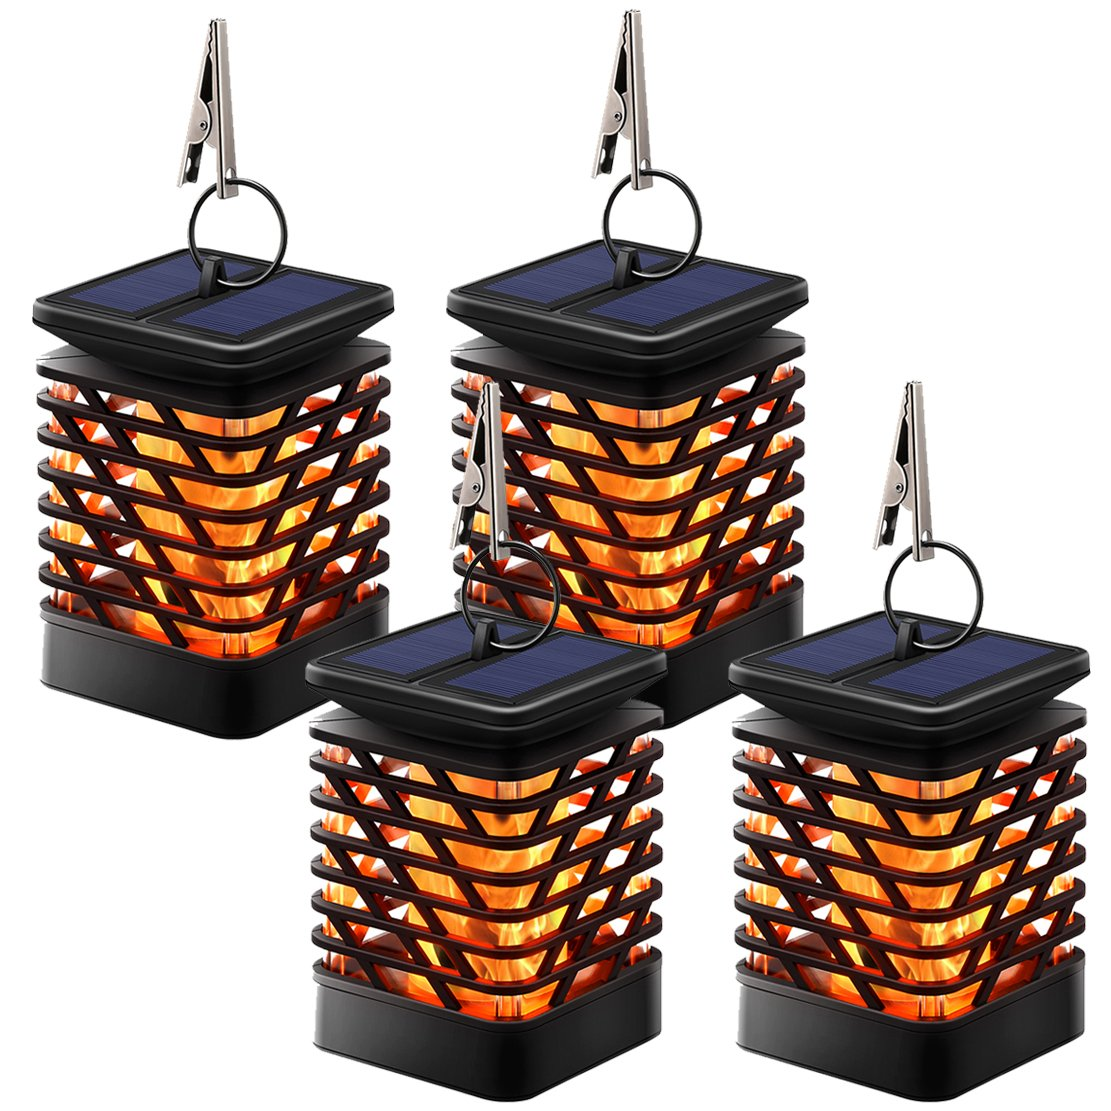 TomCare Solar Lights Solar Lanterns Dancing Flame Outdoor Hanging Lanterns Lights Decoration Lighting Solar Powered Waterproof Umbrella Lanterns Night Light Auto Sensor for Garden Patio Yard (4) by TomCare